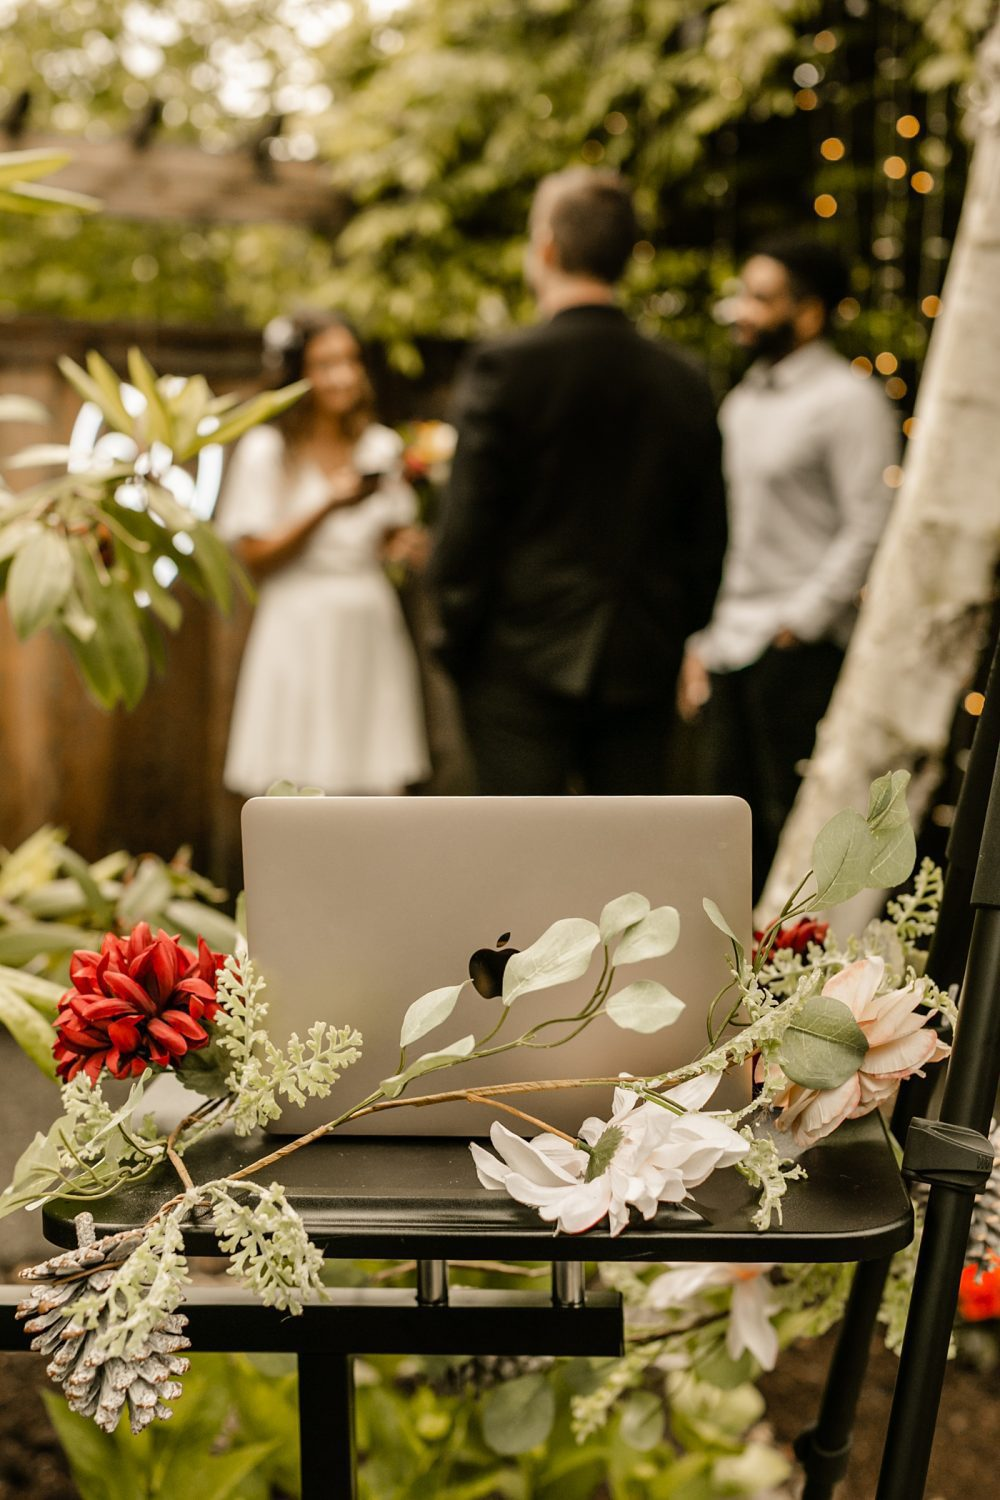 what does a social distanced zoom wedding ceremony look like